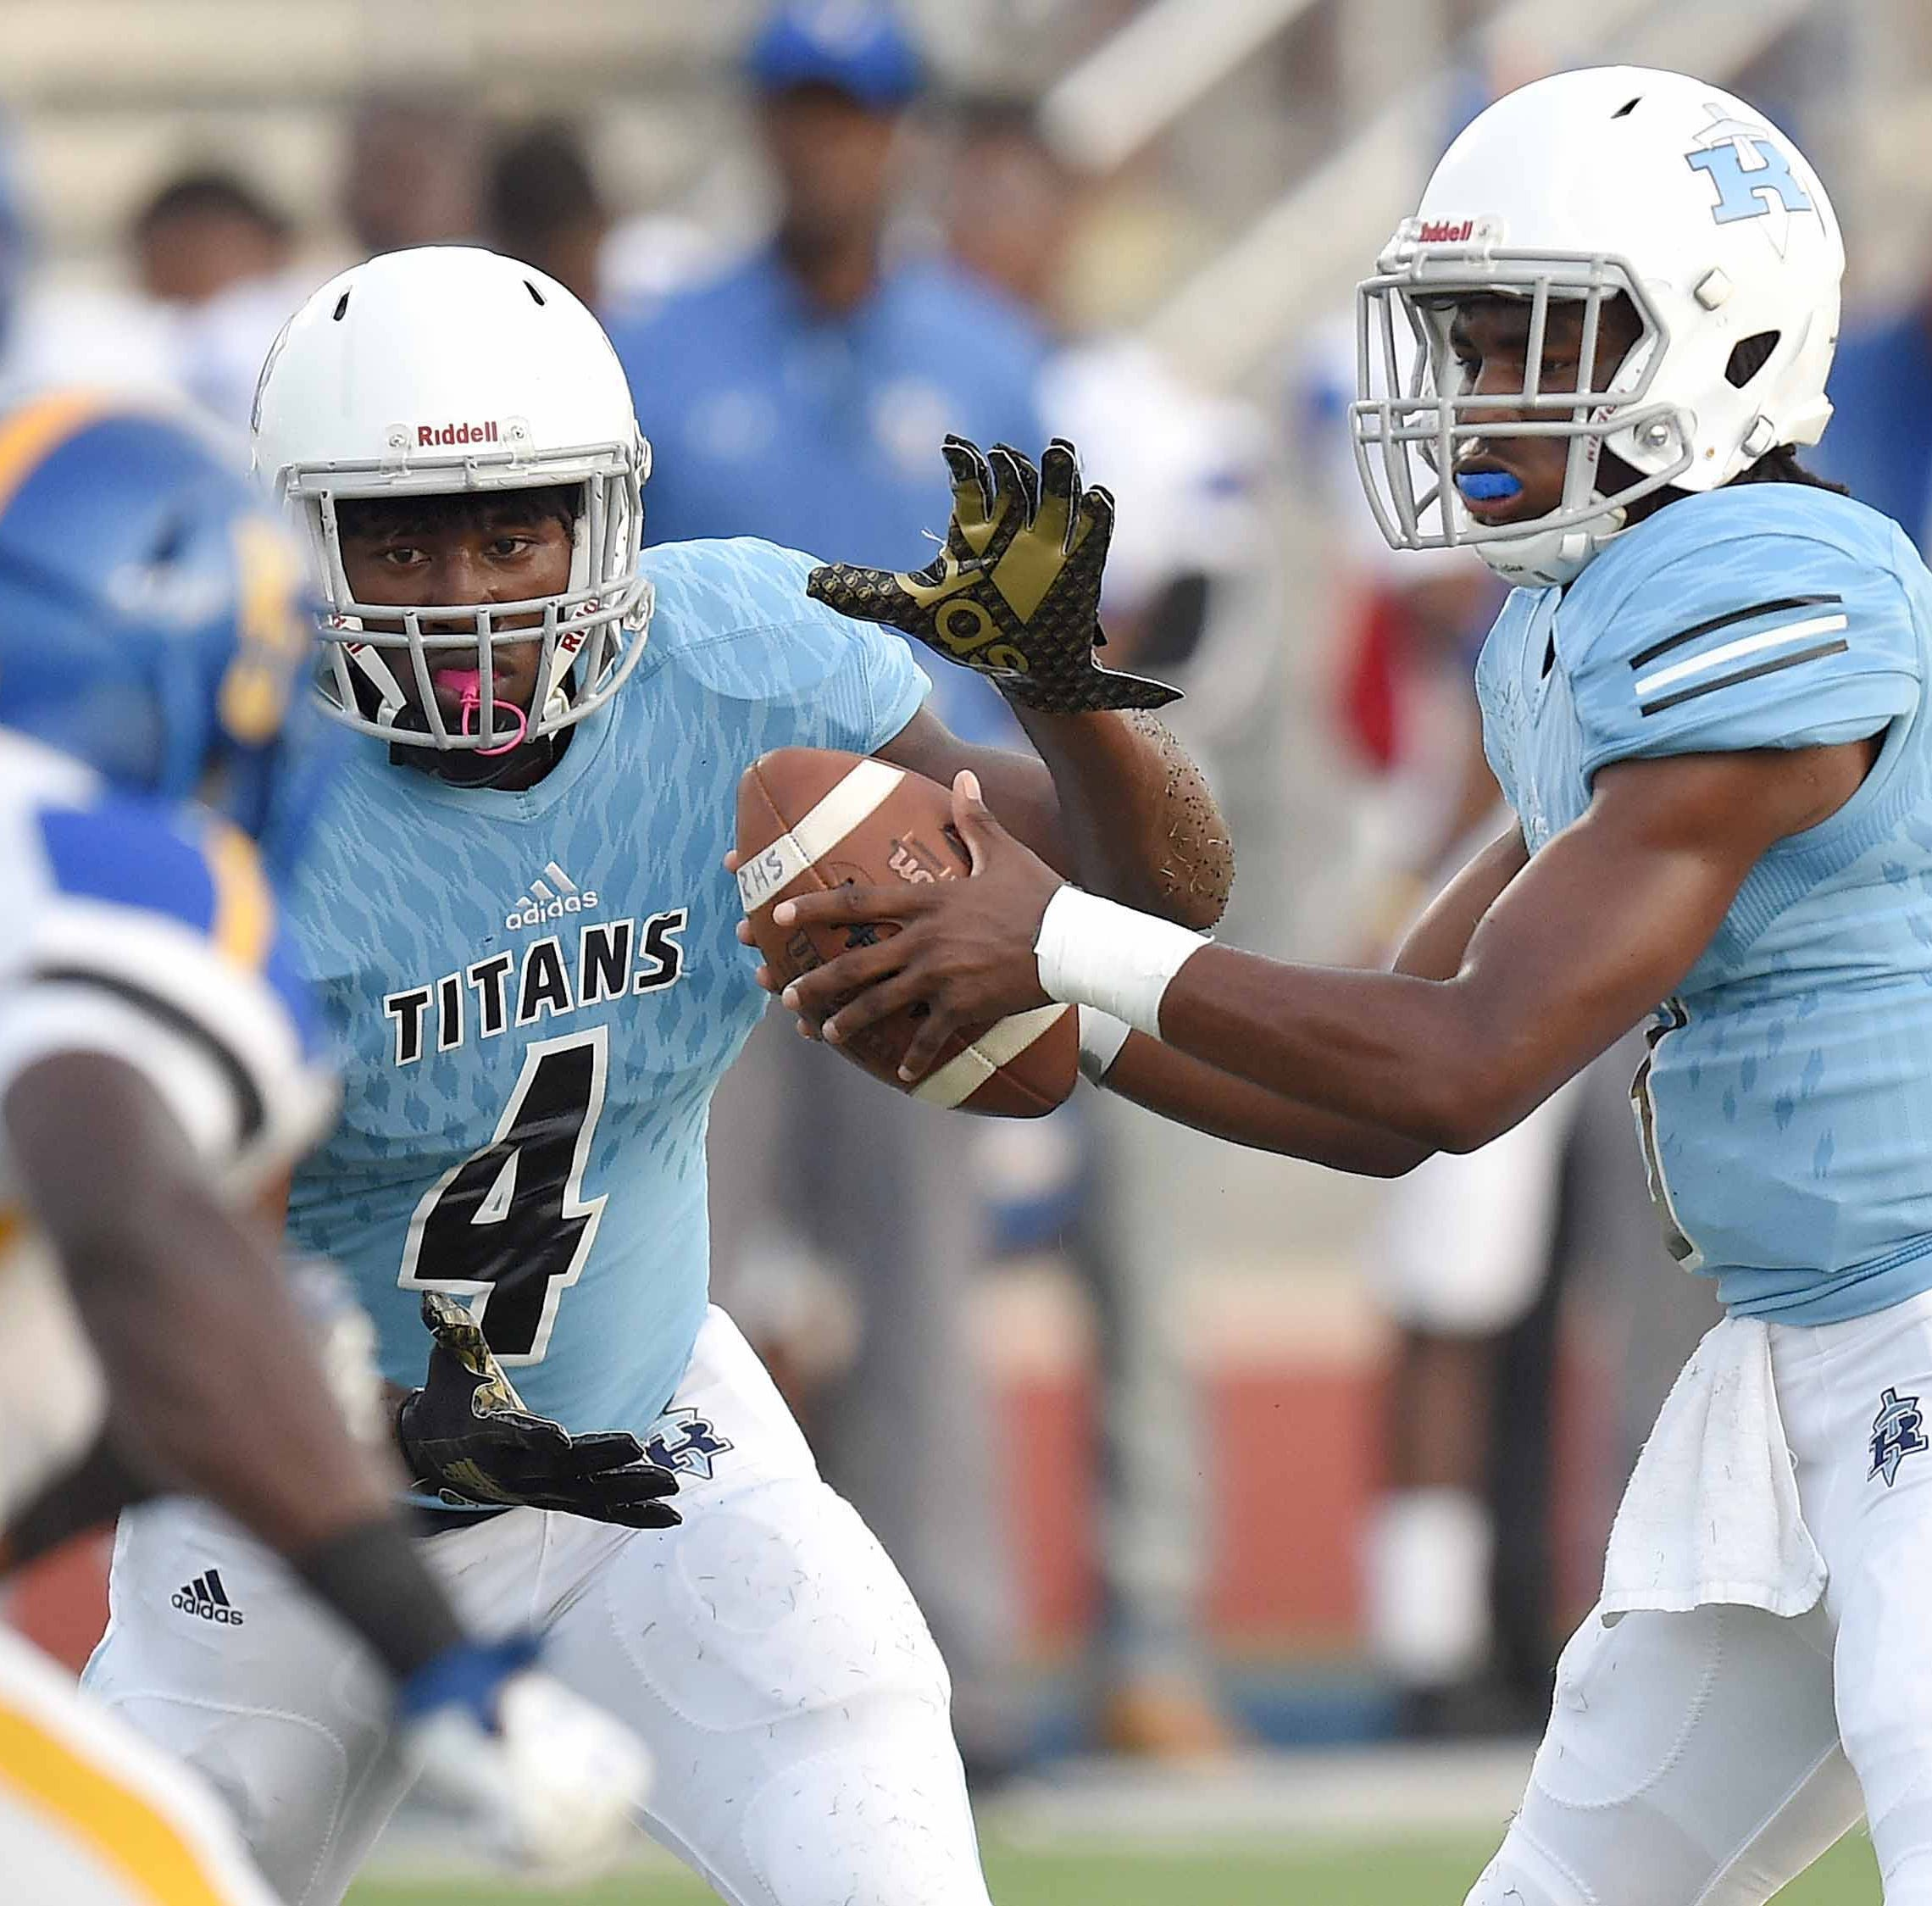 Zy McDonald leads Ridgeland to wild win over Velma Jackson